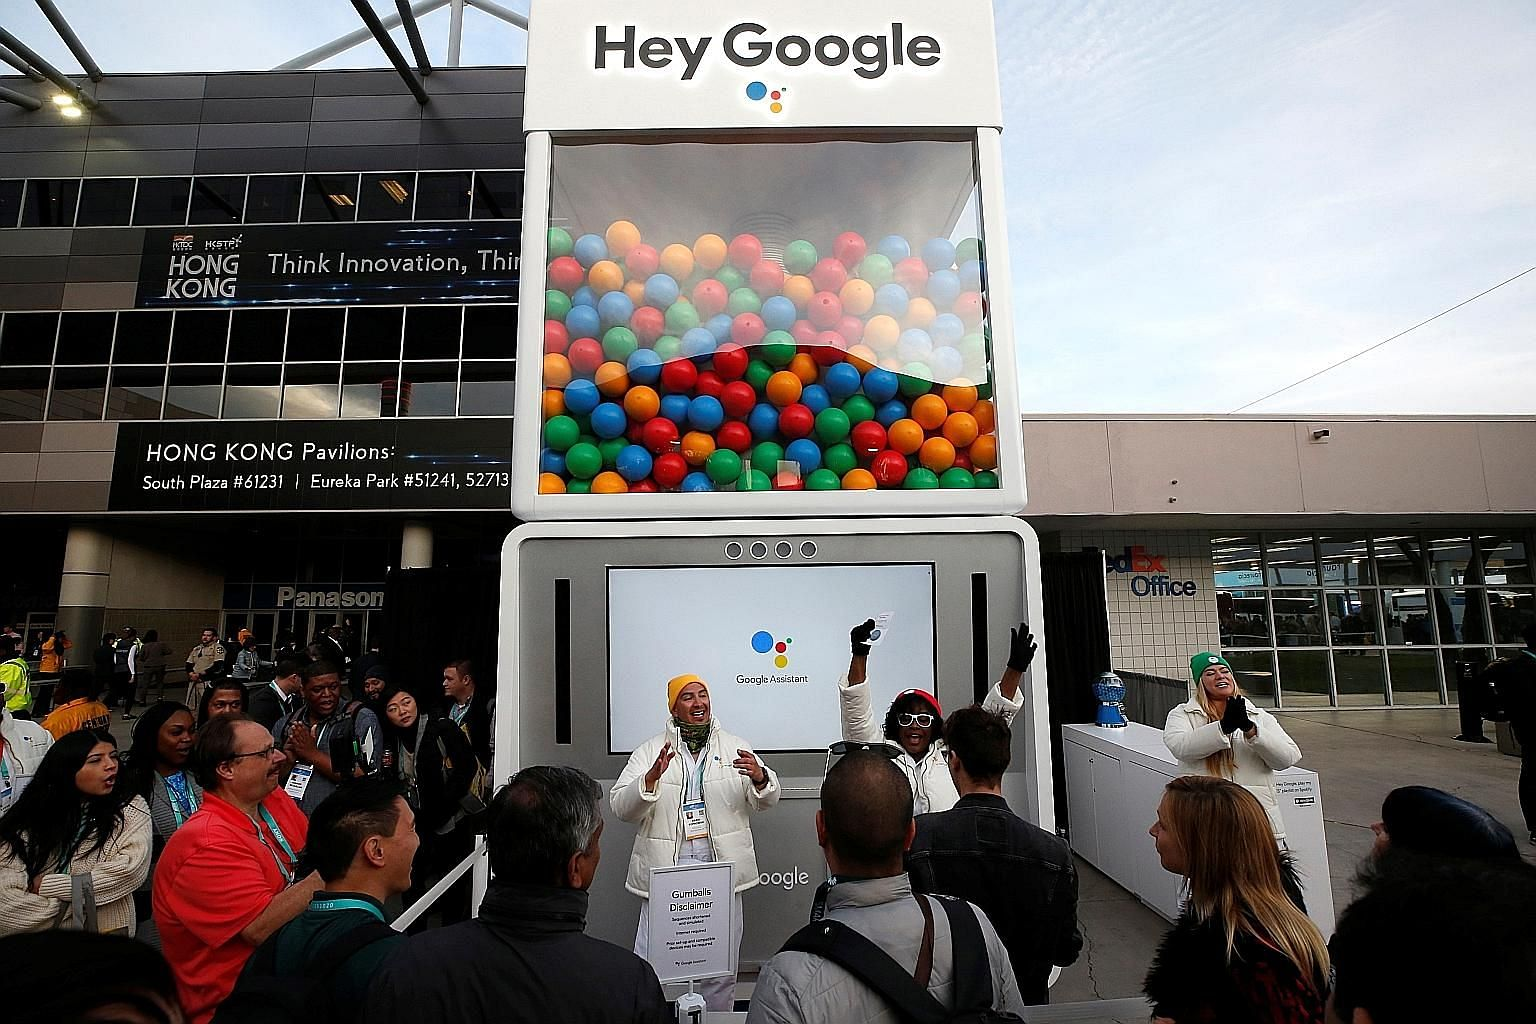 """A Google """"gumball"""" machine during the 2020 CES in Las Vegas earlier this month. Shares in its parent company, Alphabet, closed at US$1,450.16 on Thursday, valuing the tech titan at above US$1 trillion for the first time."""